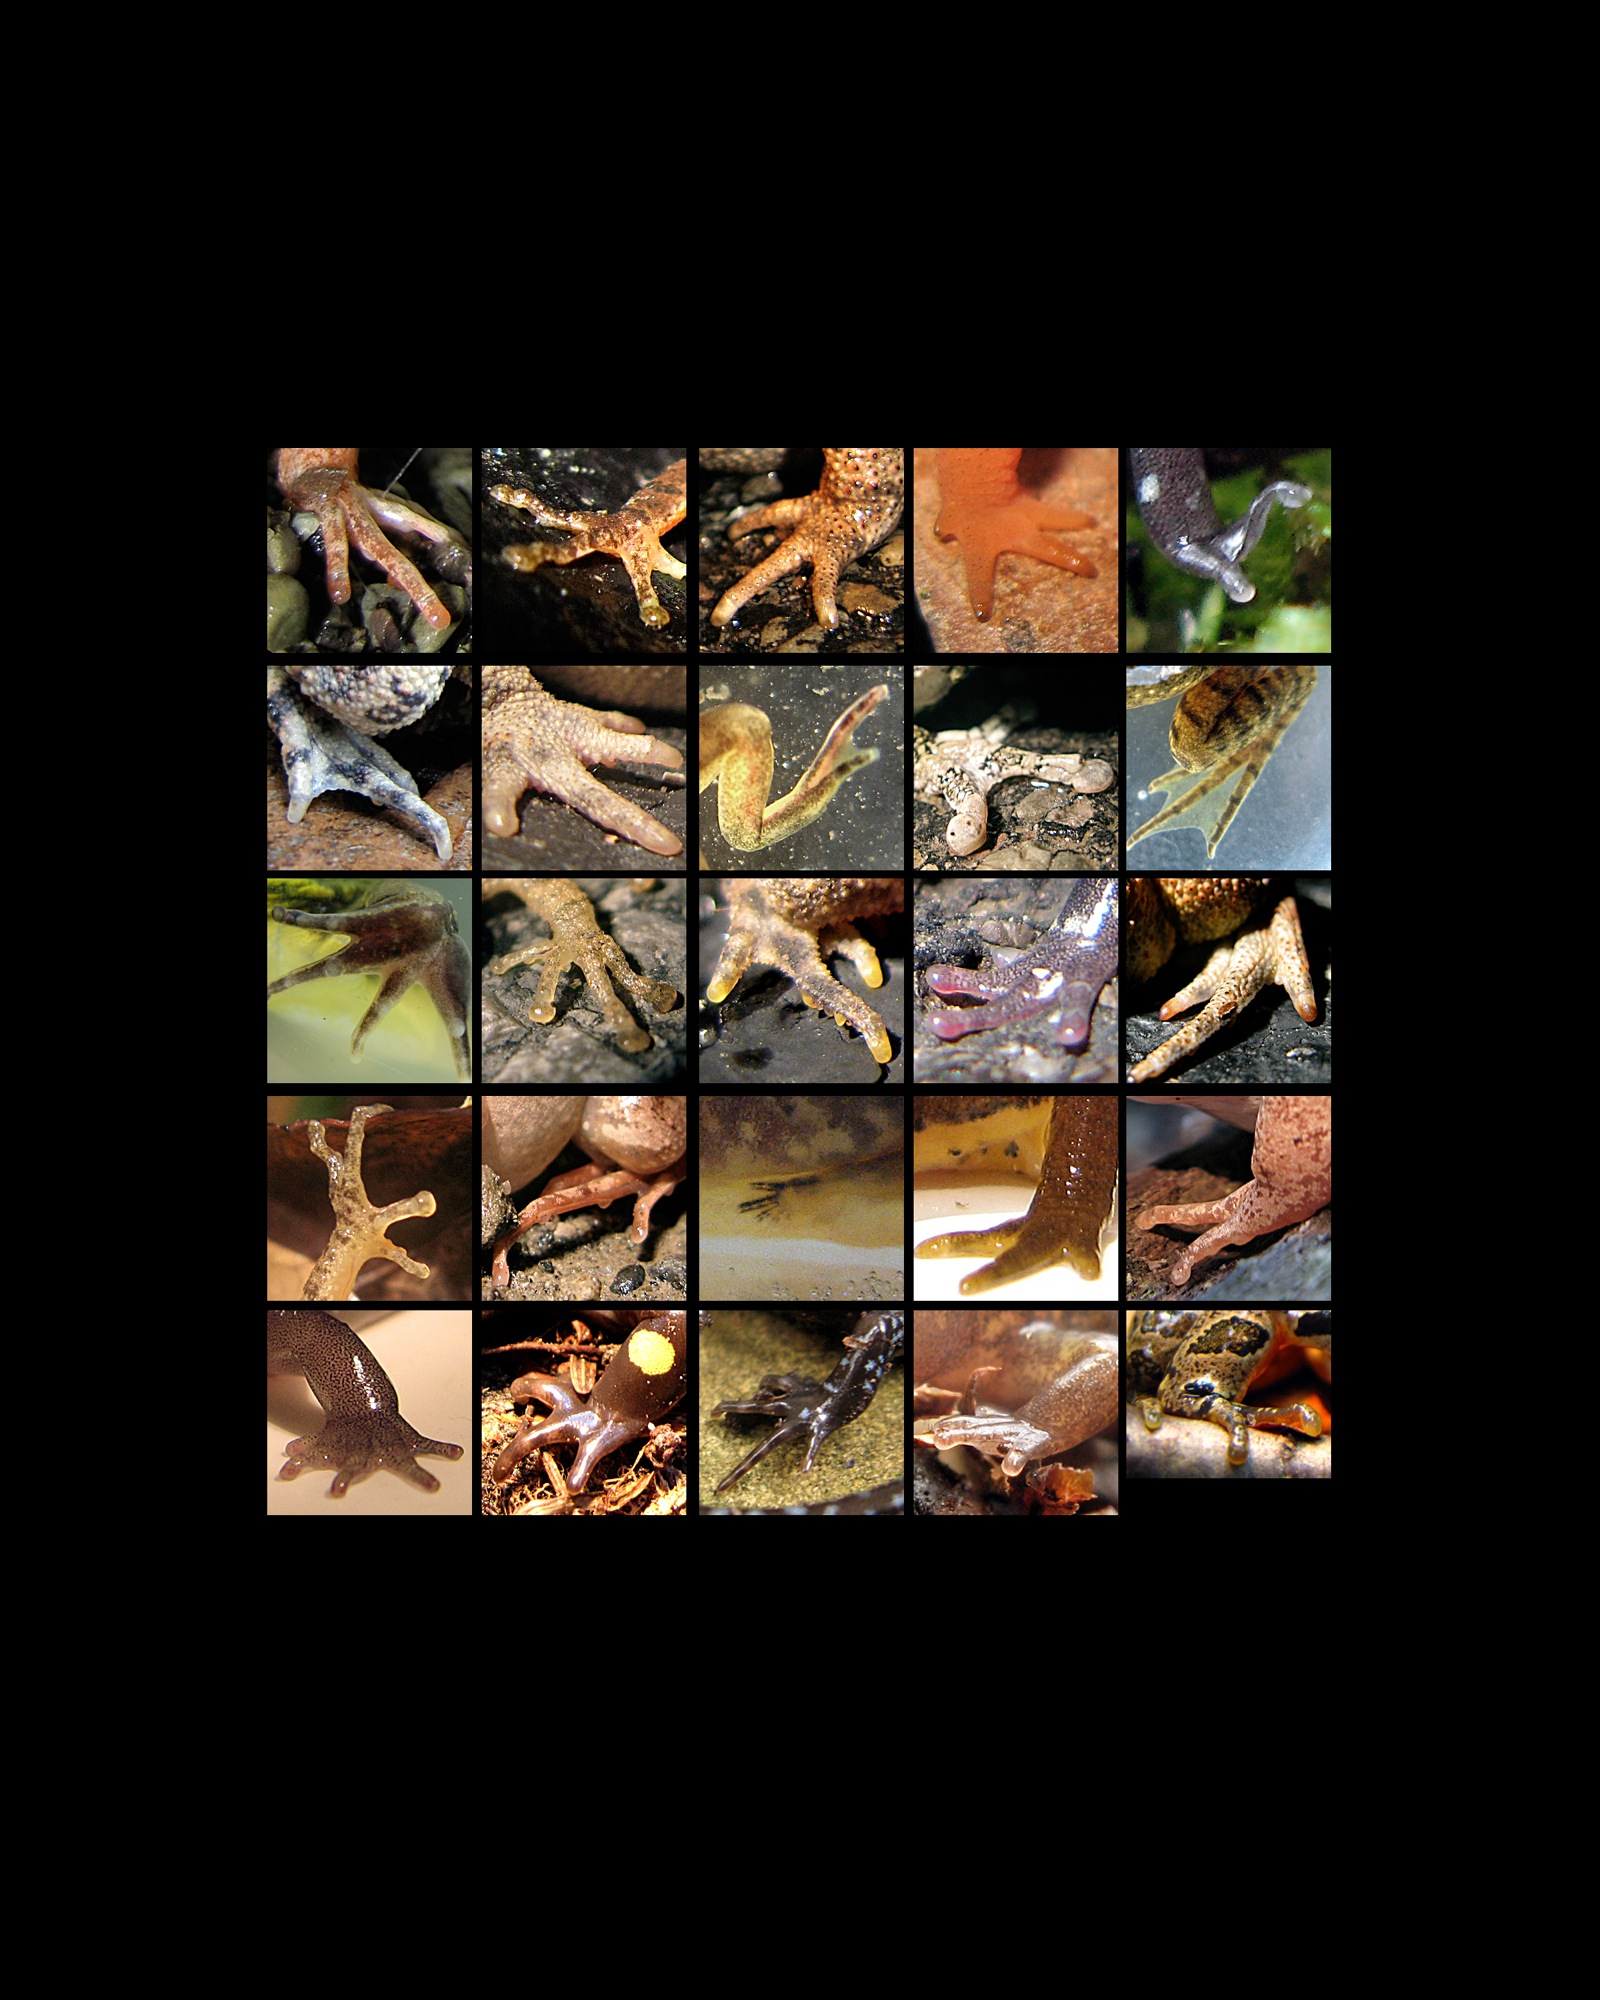 amphibian feet grid 8x10 copy 3.jpg